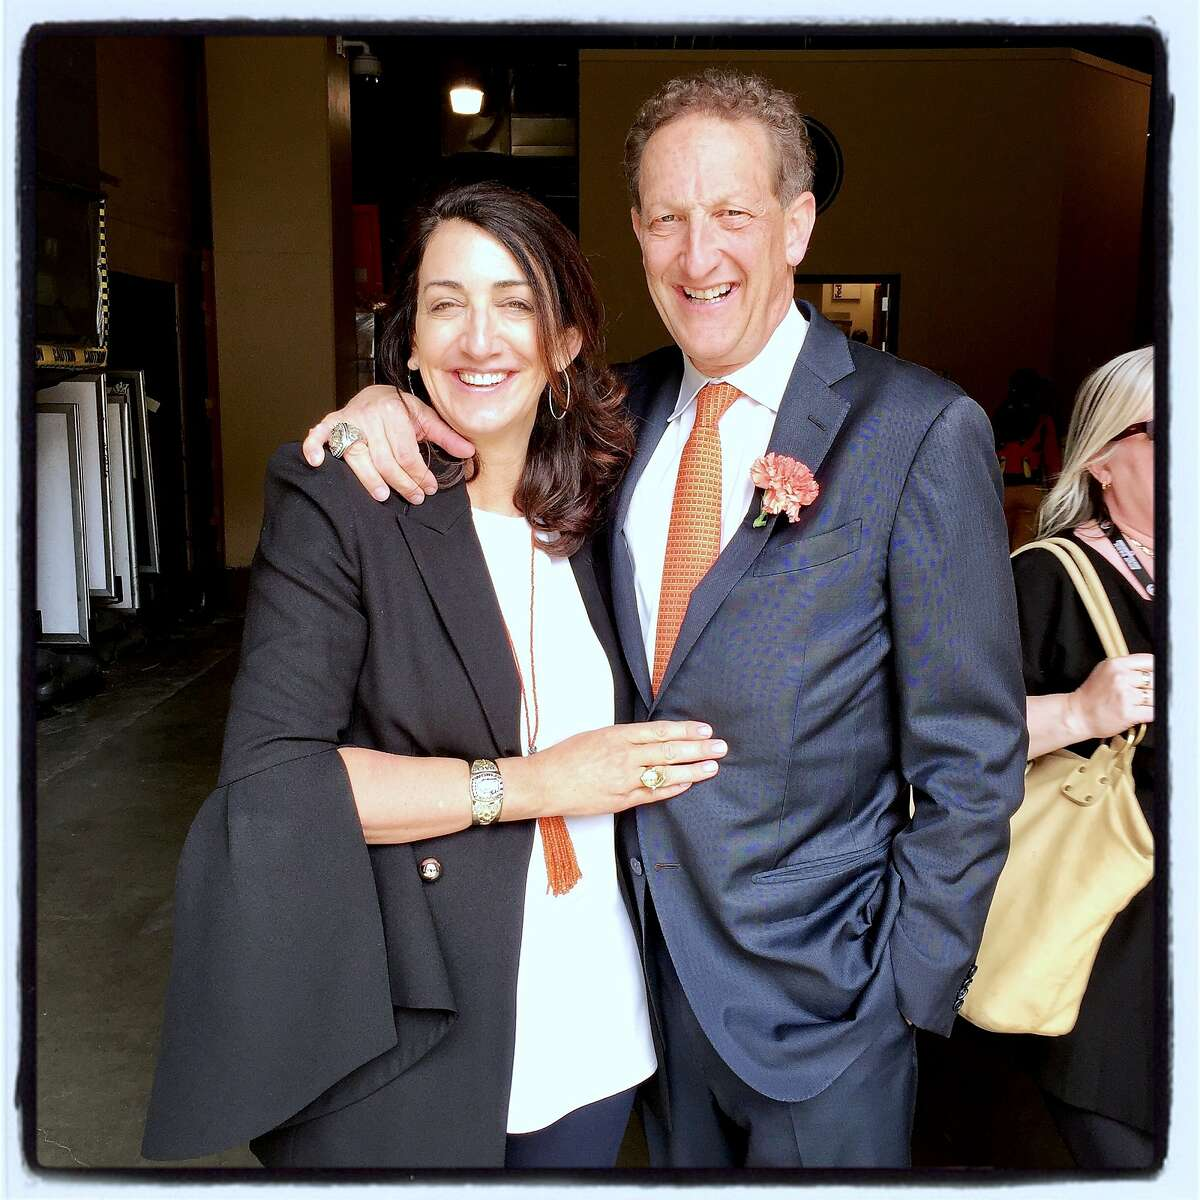 Pam Baer and her husband, Giants CEO Larry Baer, celebrate the team's home opener at AT&T ballpark. April 10, 2017.